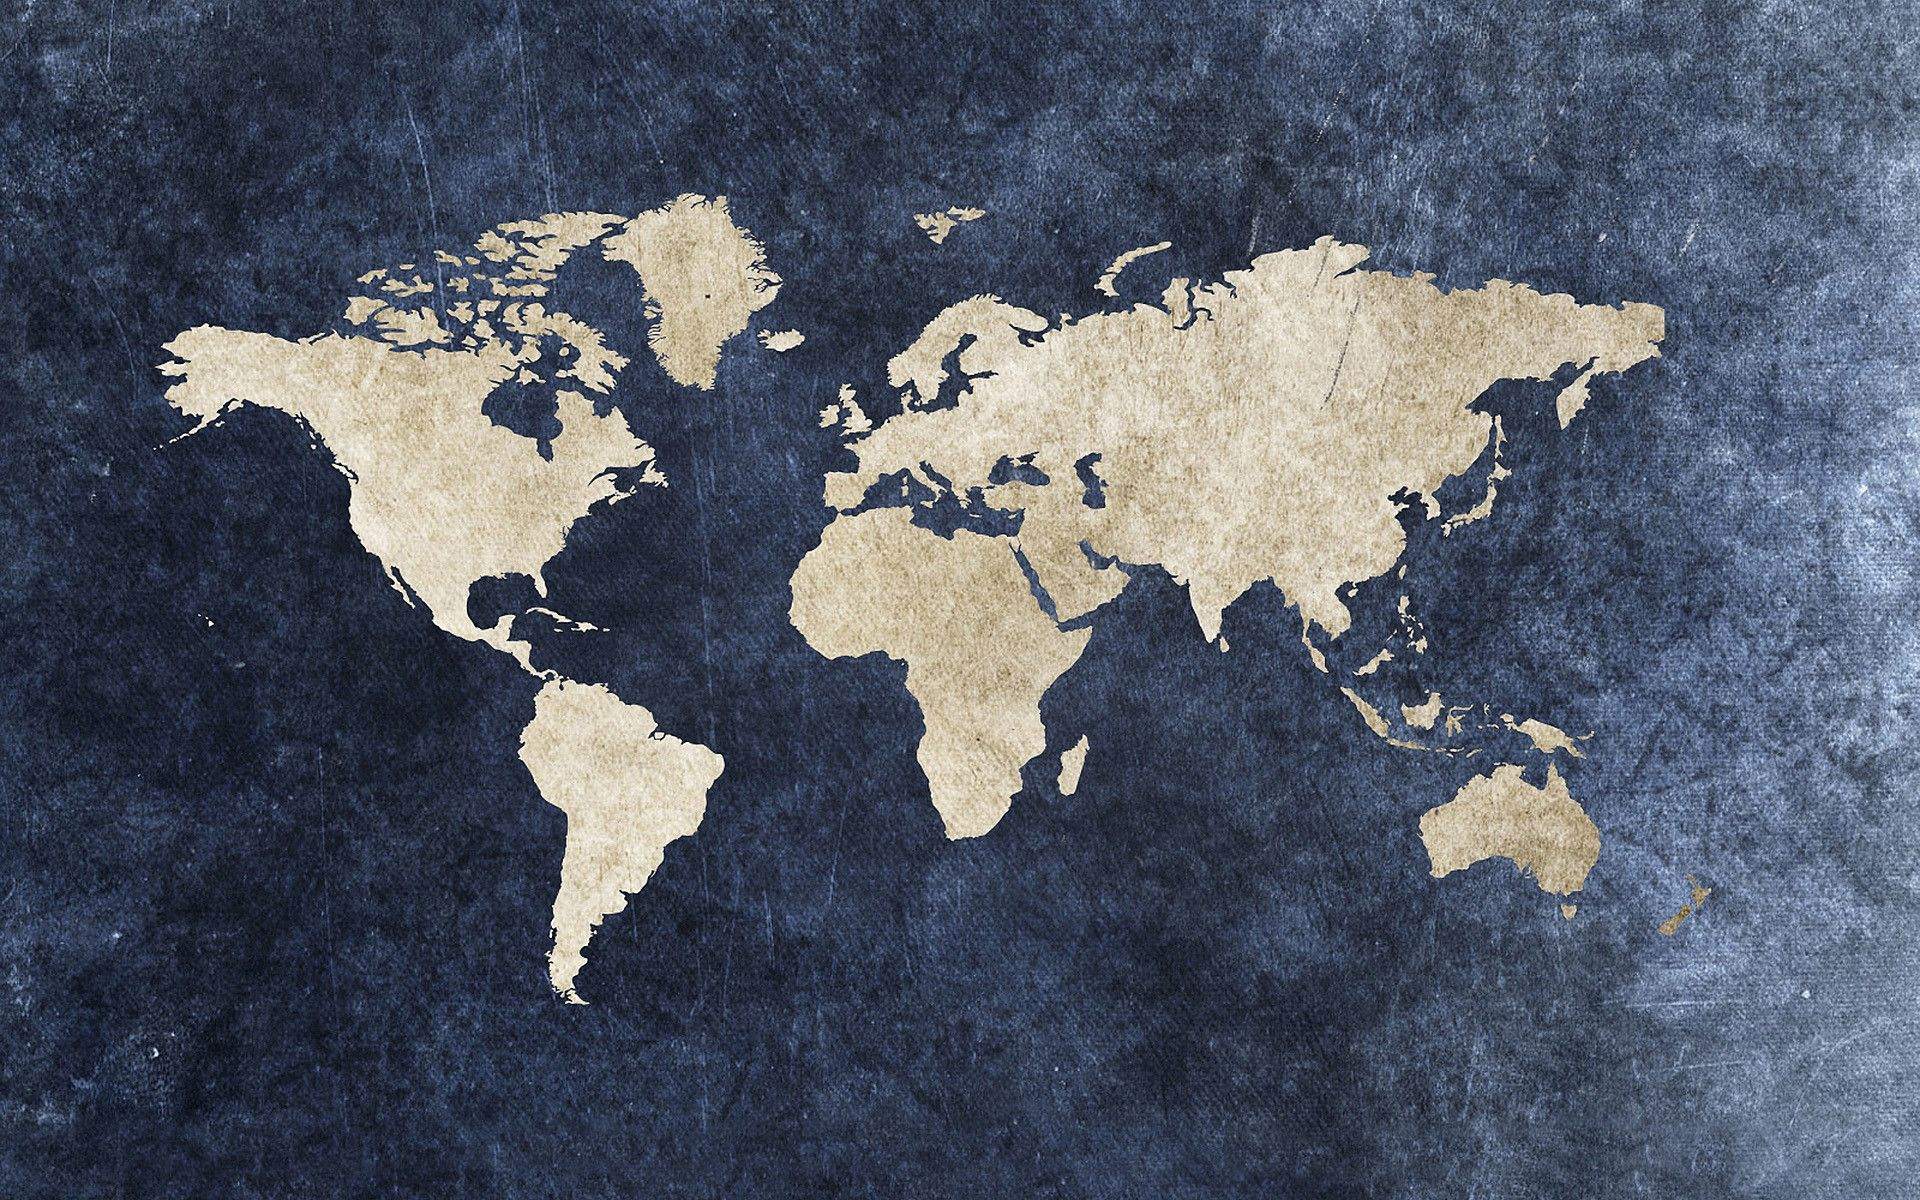 Day night world map screensaver 4k pictures 4k pictures full hq day map day and night world map desktop mrket me day and night world map desktop day night world map on the app store day night world map on the app gumiabroncs Images